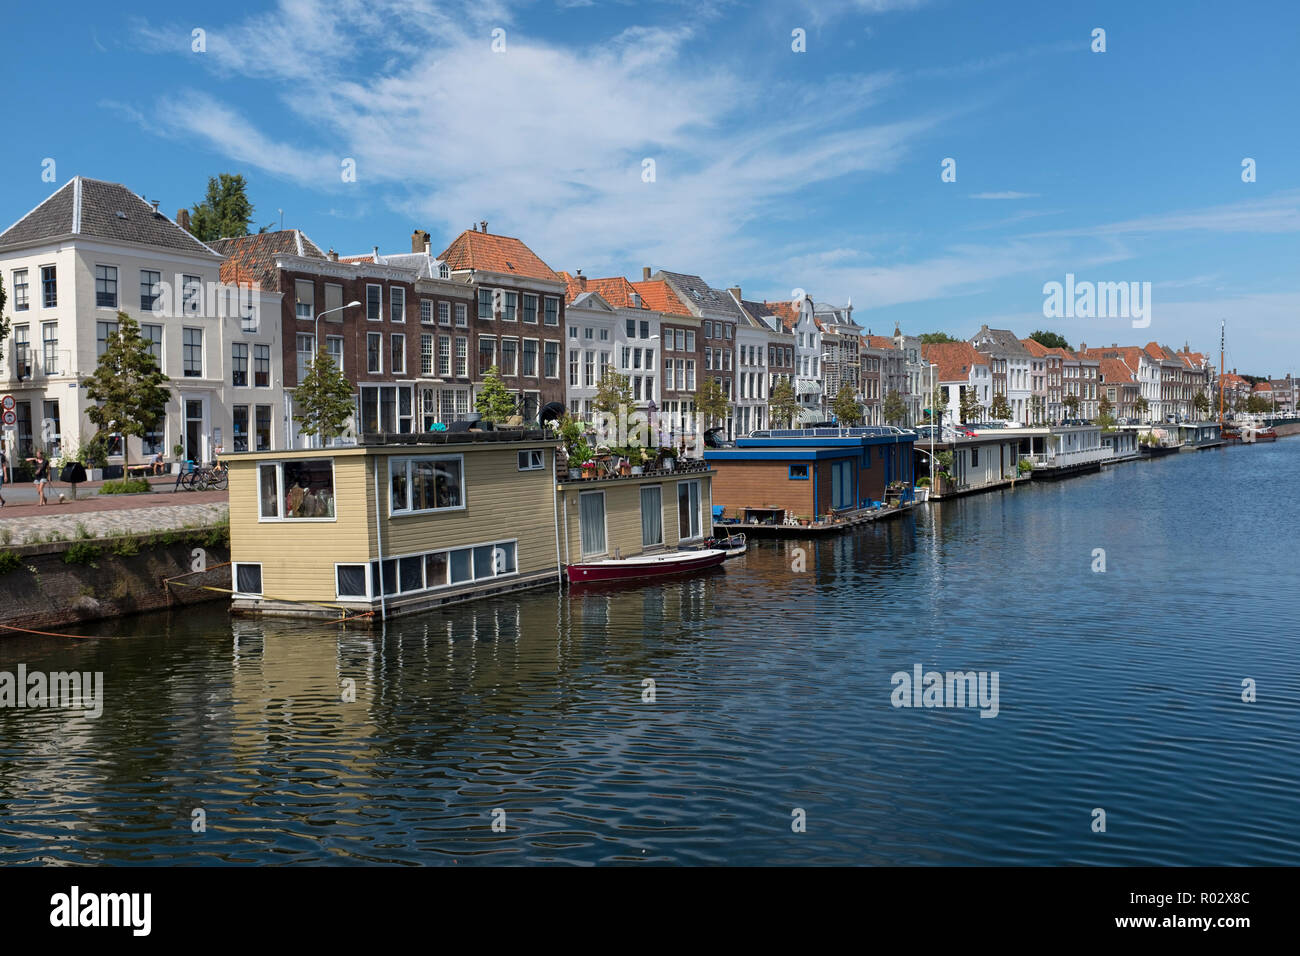 House boats on the river Scheldt at Middelburg, Netherlands Stock Photo